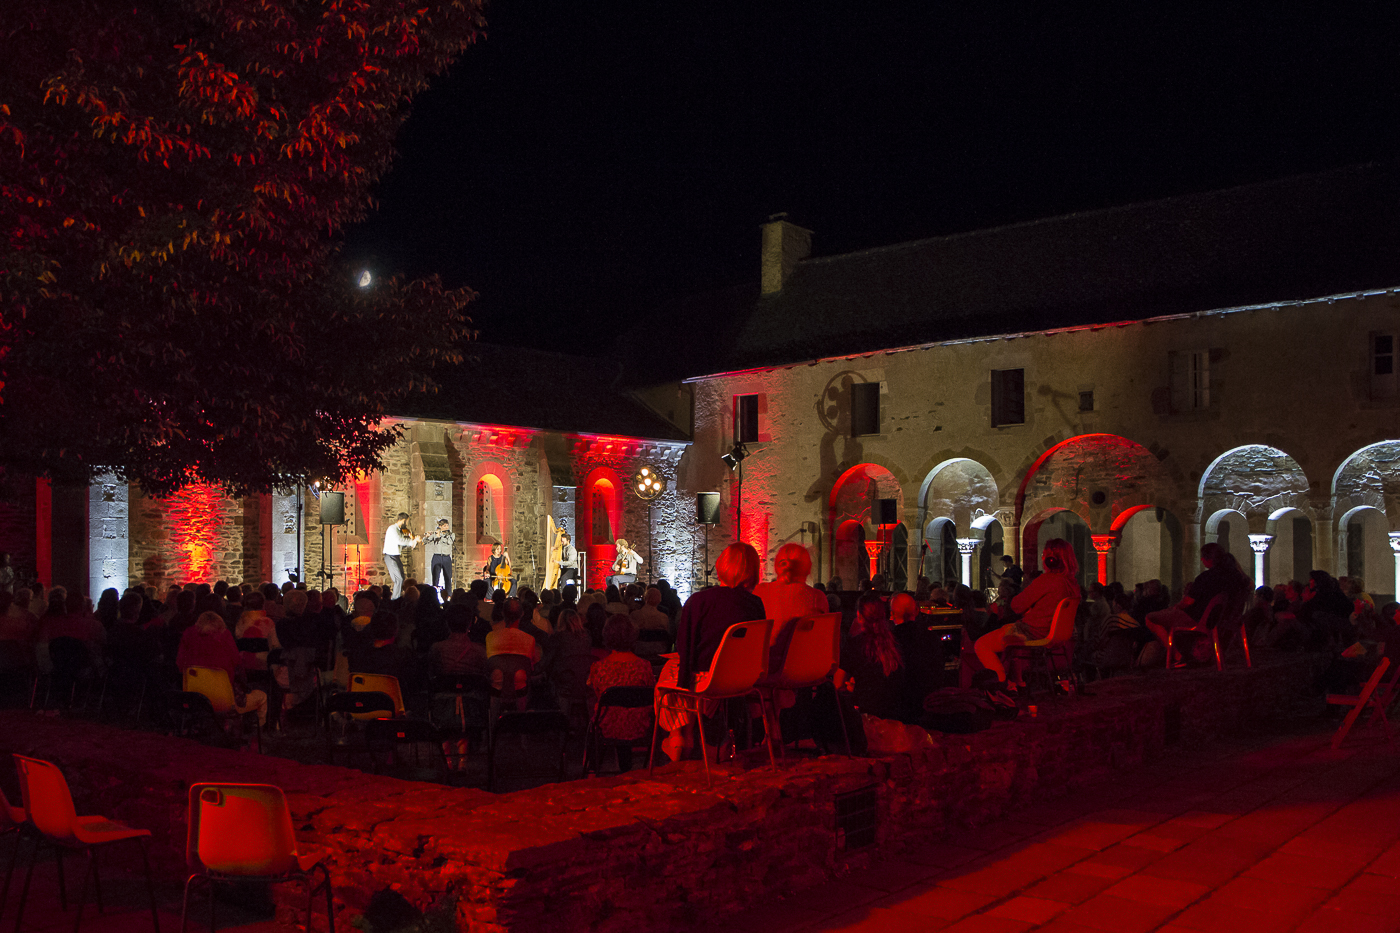 By moonlight on the green, The Curious Bards, Conques, Aveyron, 2020 ©George Berte